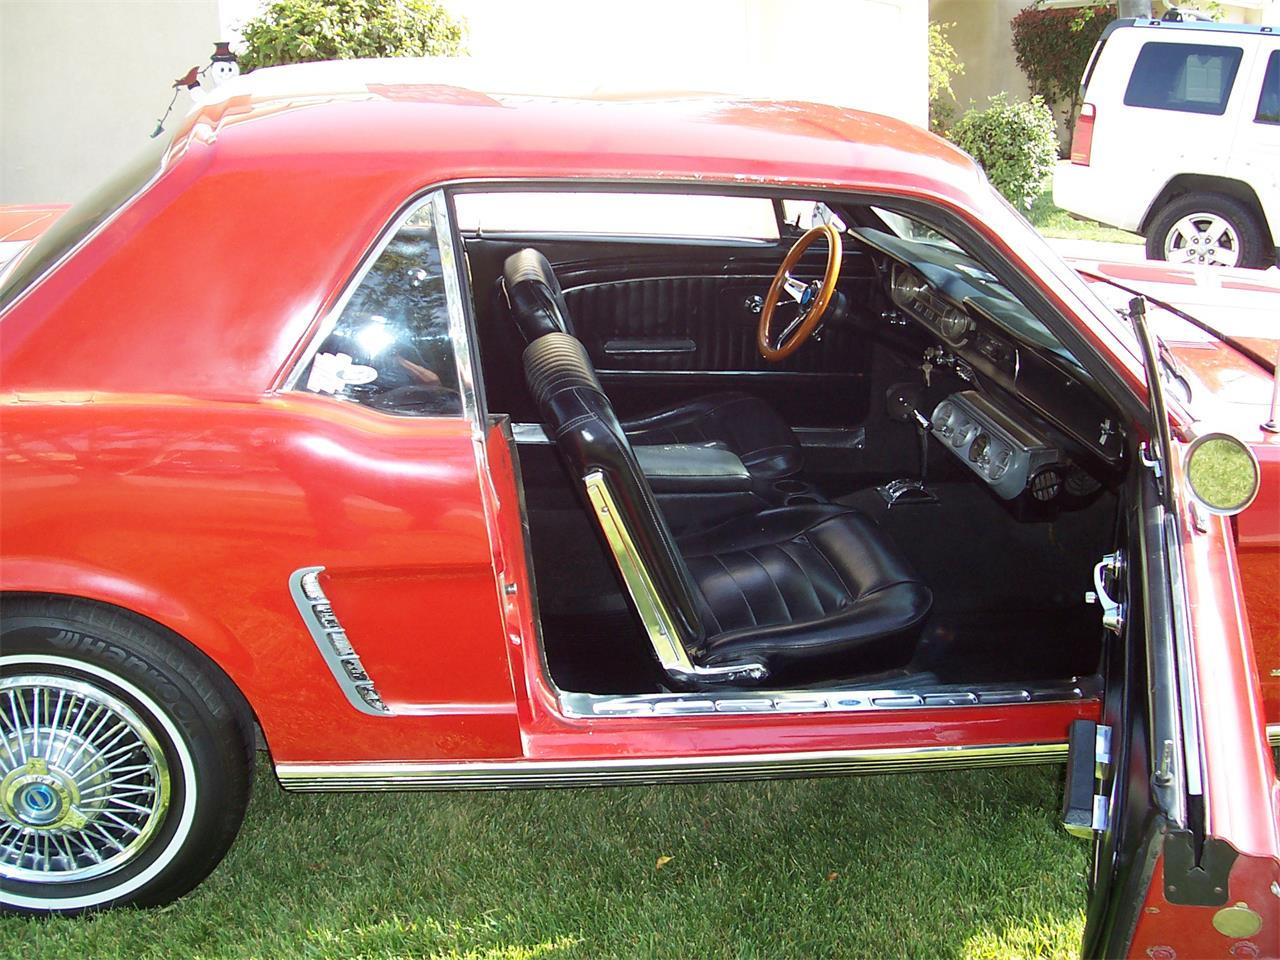 Large Picture of 1965 Ford Mustang located in California - $13,000.00 Offered by a Private Seller - CCRD